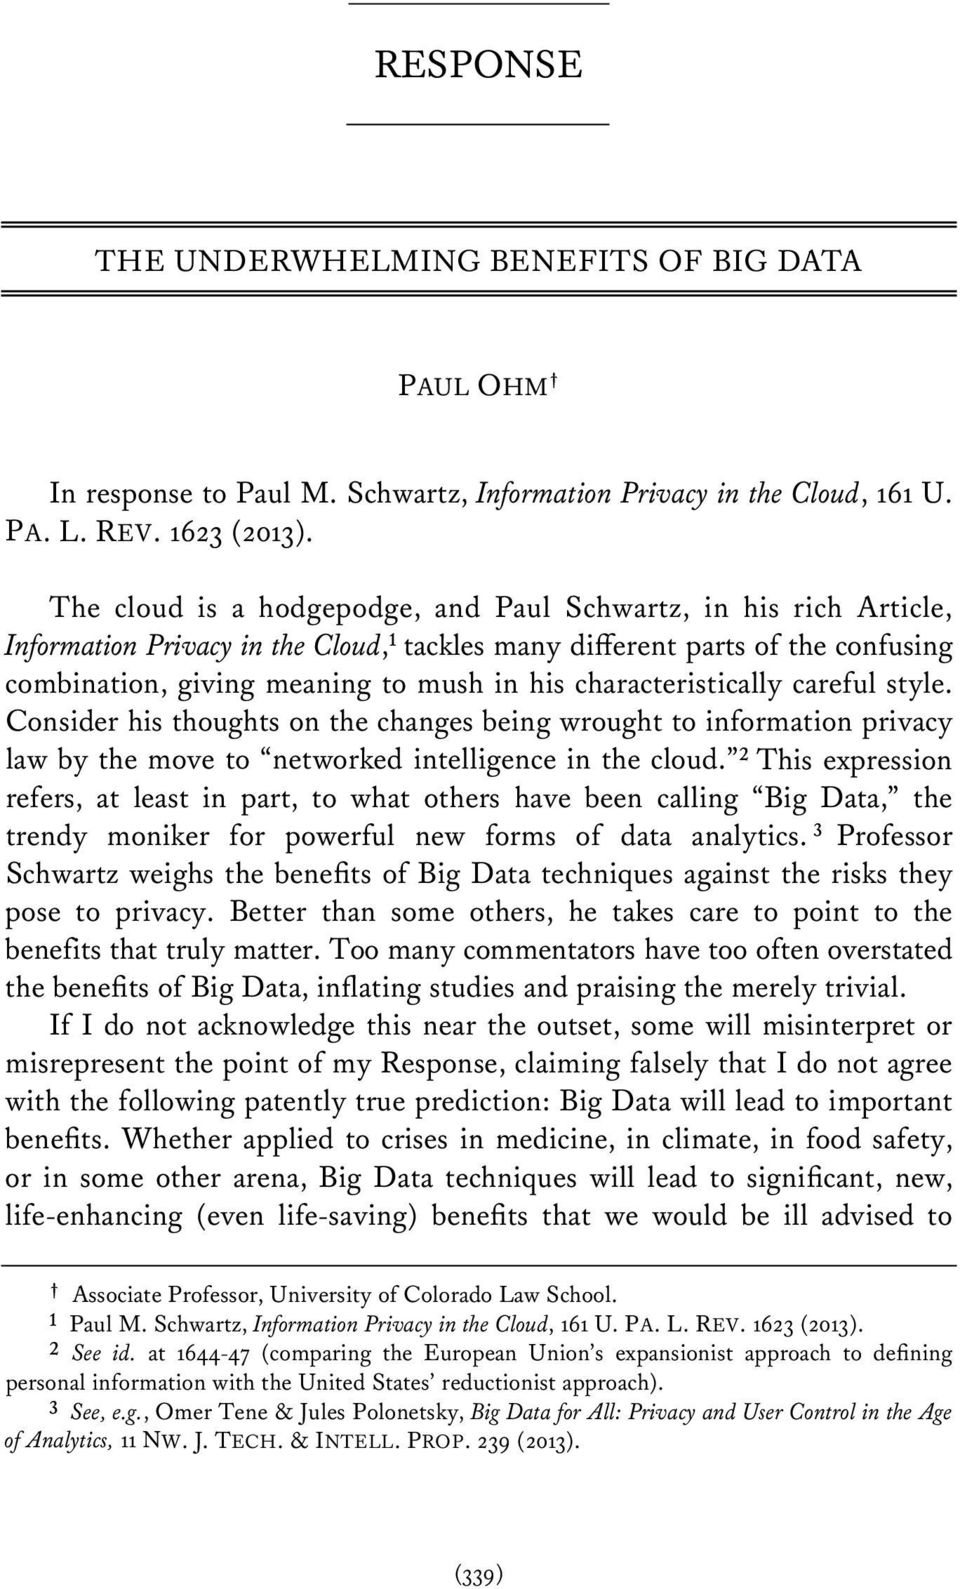 characteristically careful style. Consider his thoughts on the changes being wrought to information privacy law by the move to networked intelligence in the cloud.